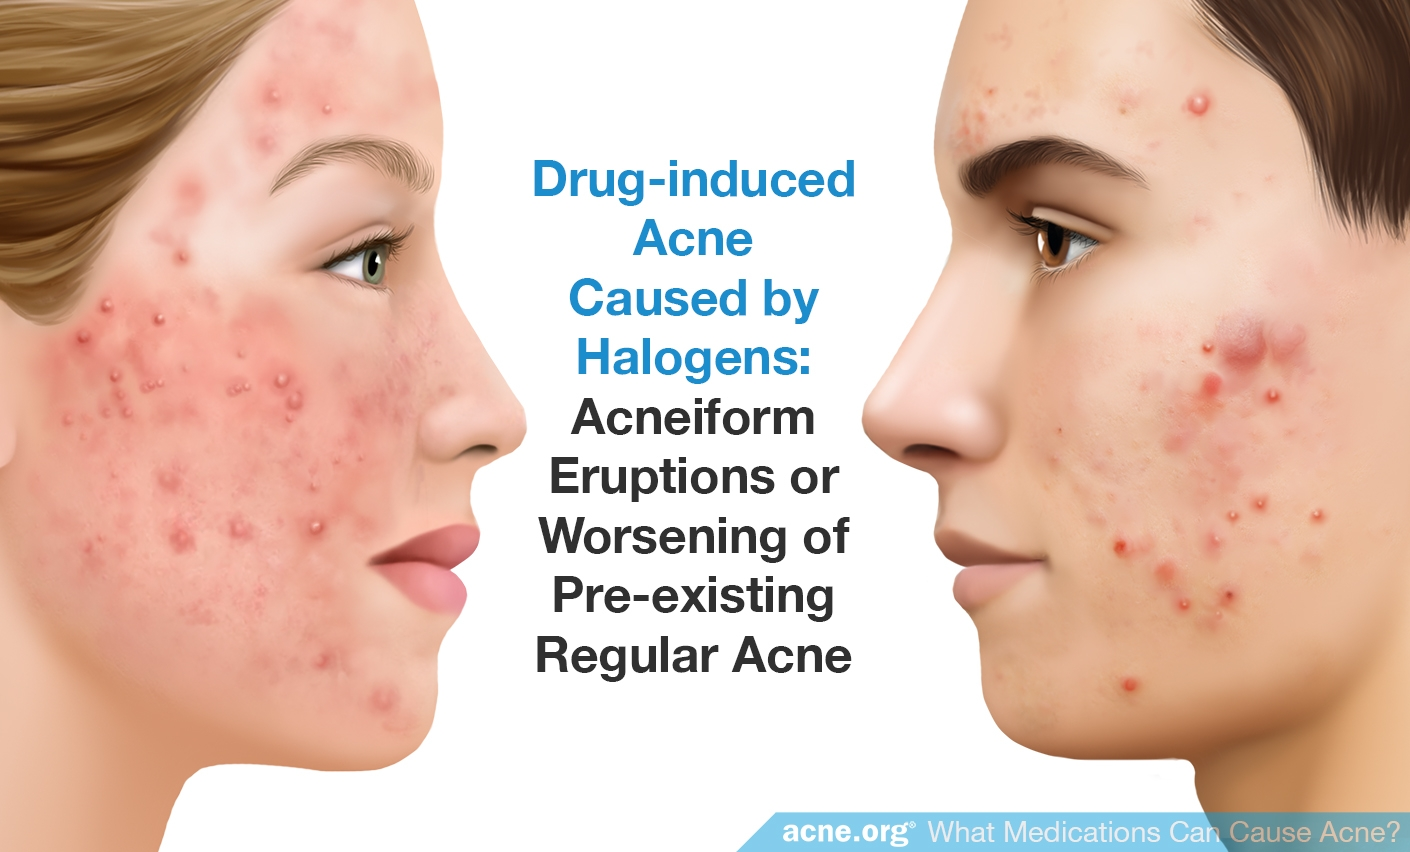 Drug-induced Acne Caused by Halogens